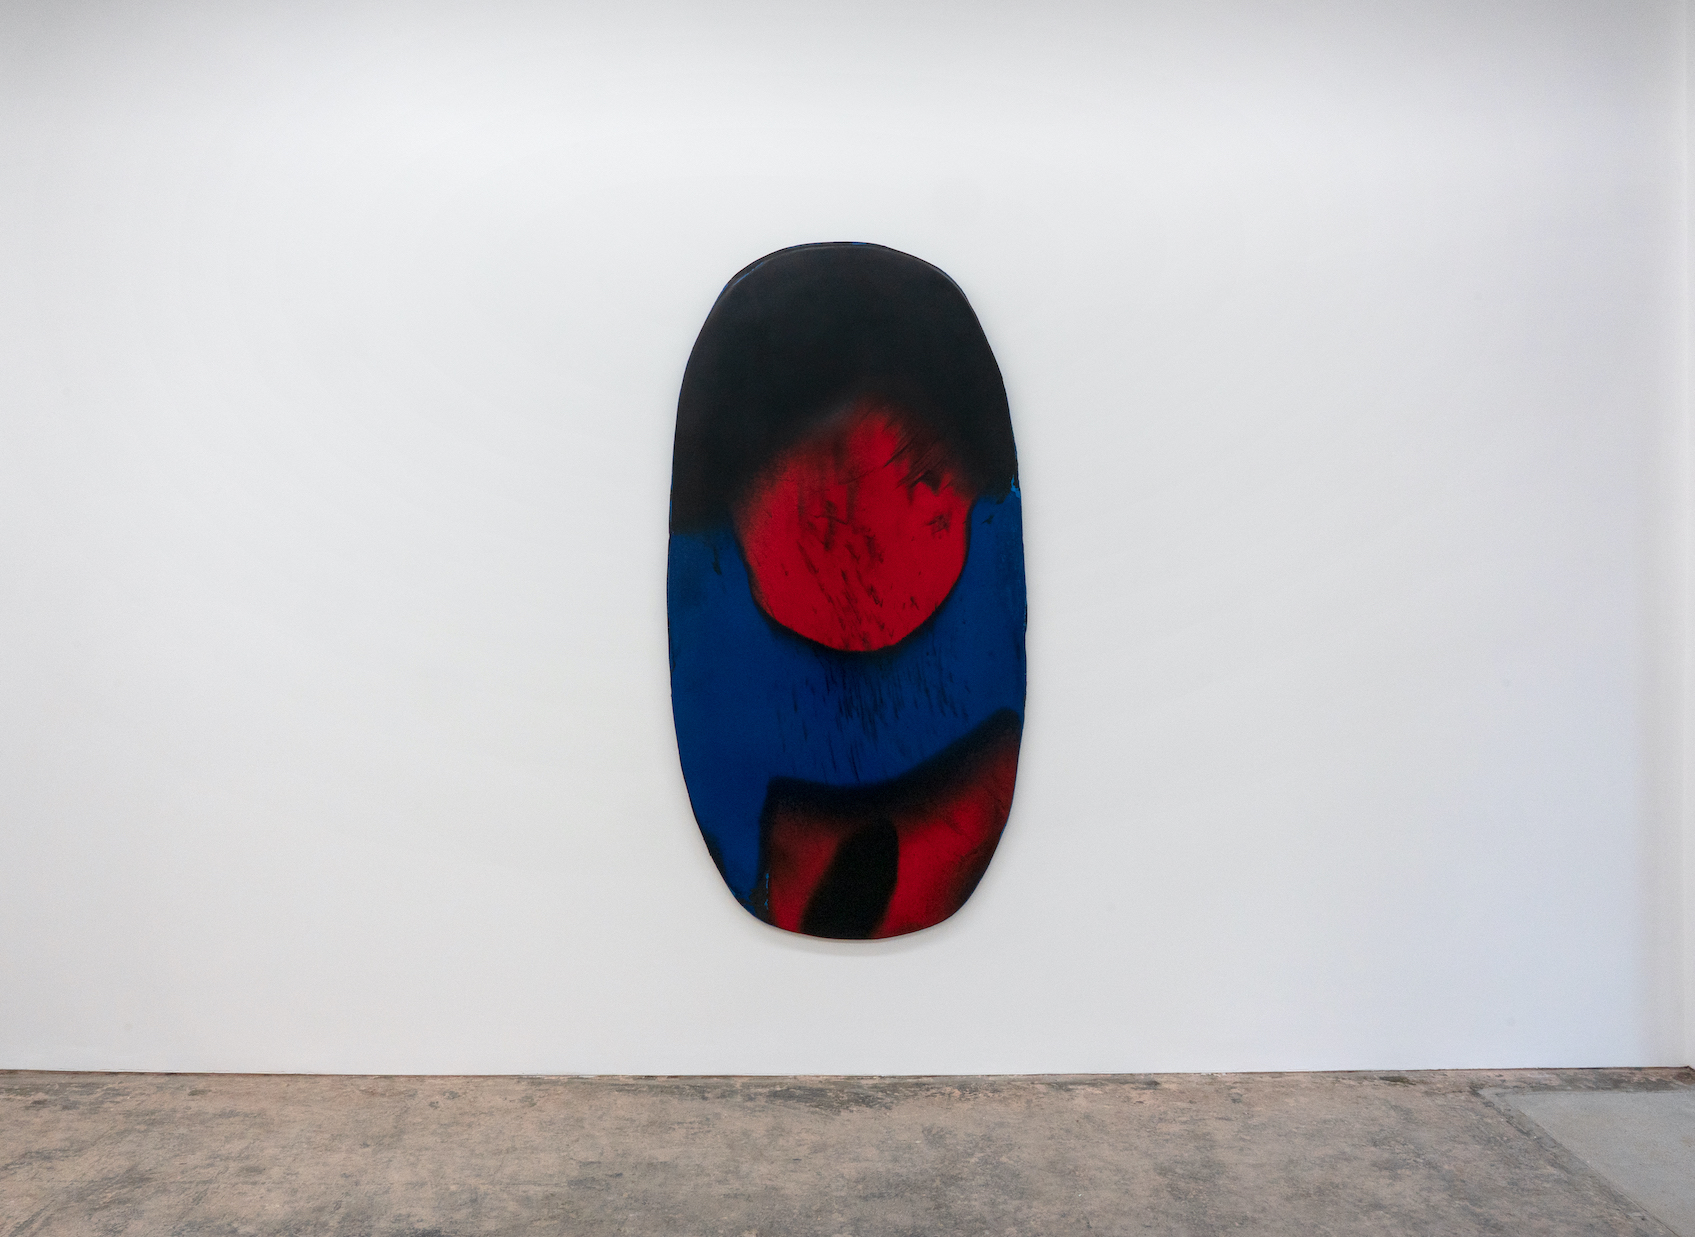 Harminder Judge, Untitled (eye over waves over rock), 2020, courtesy of the artist and PUBLIC Gallery